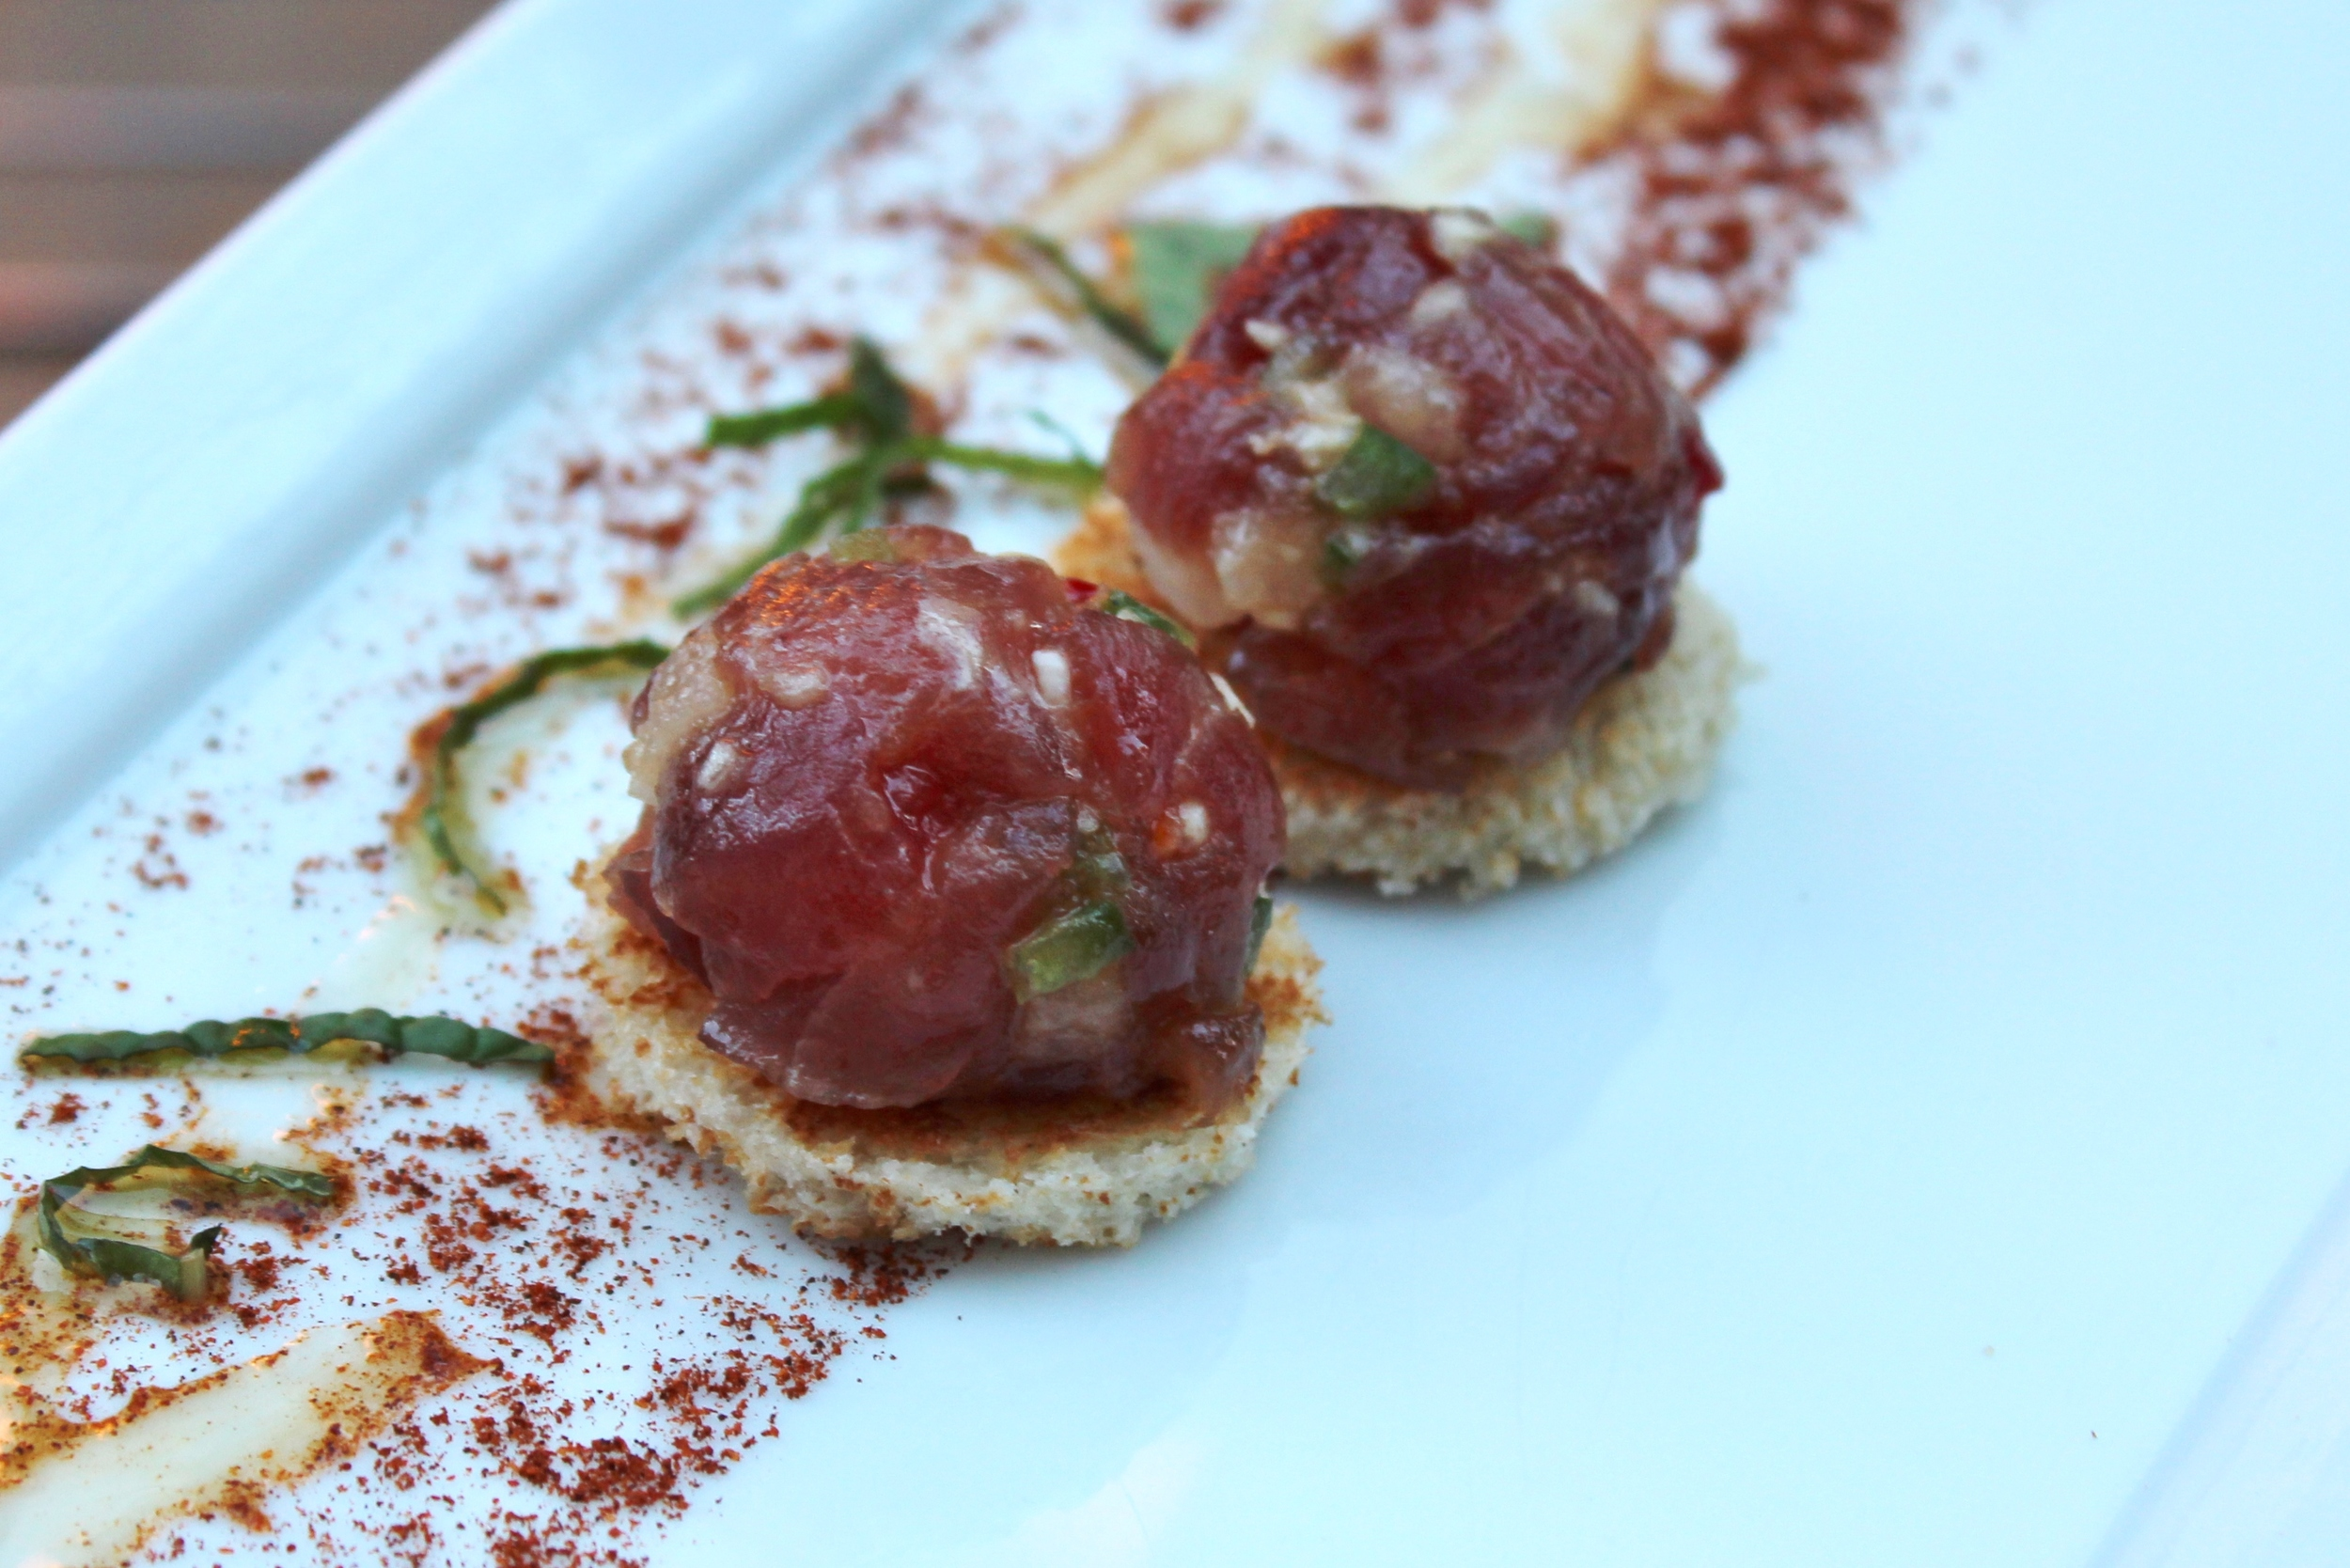 Tuna tartare with ancho chile, Asian pear, pine nuts, and mint